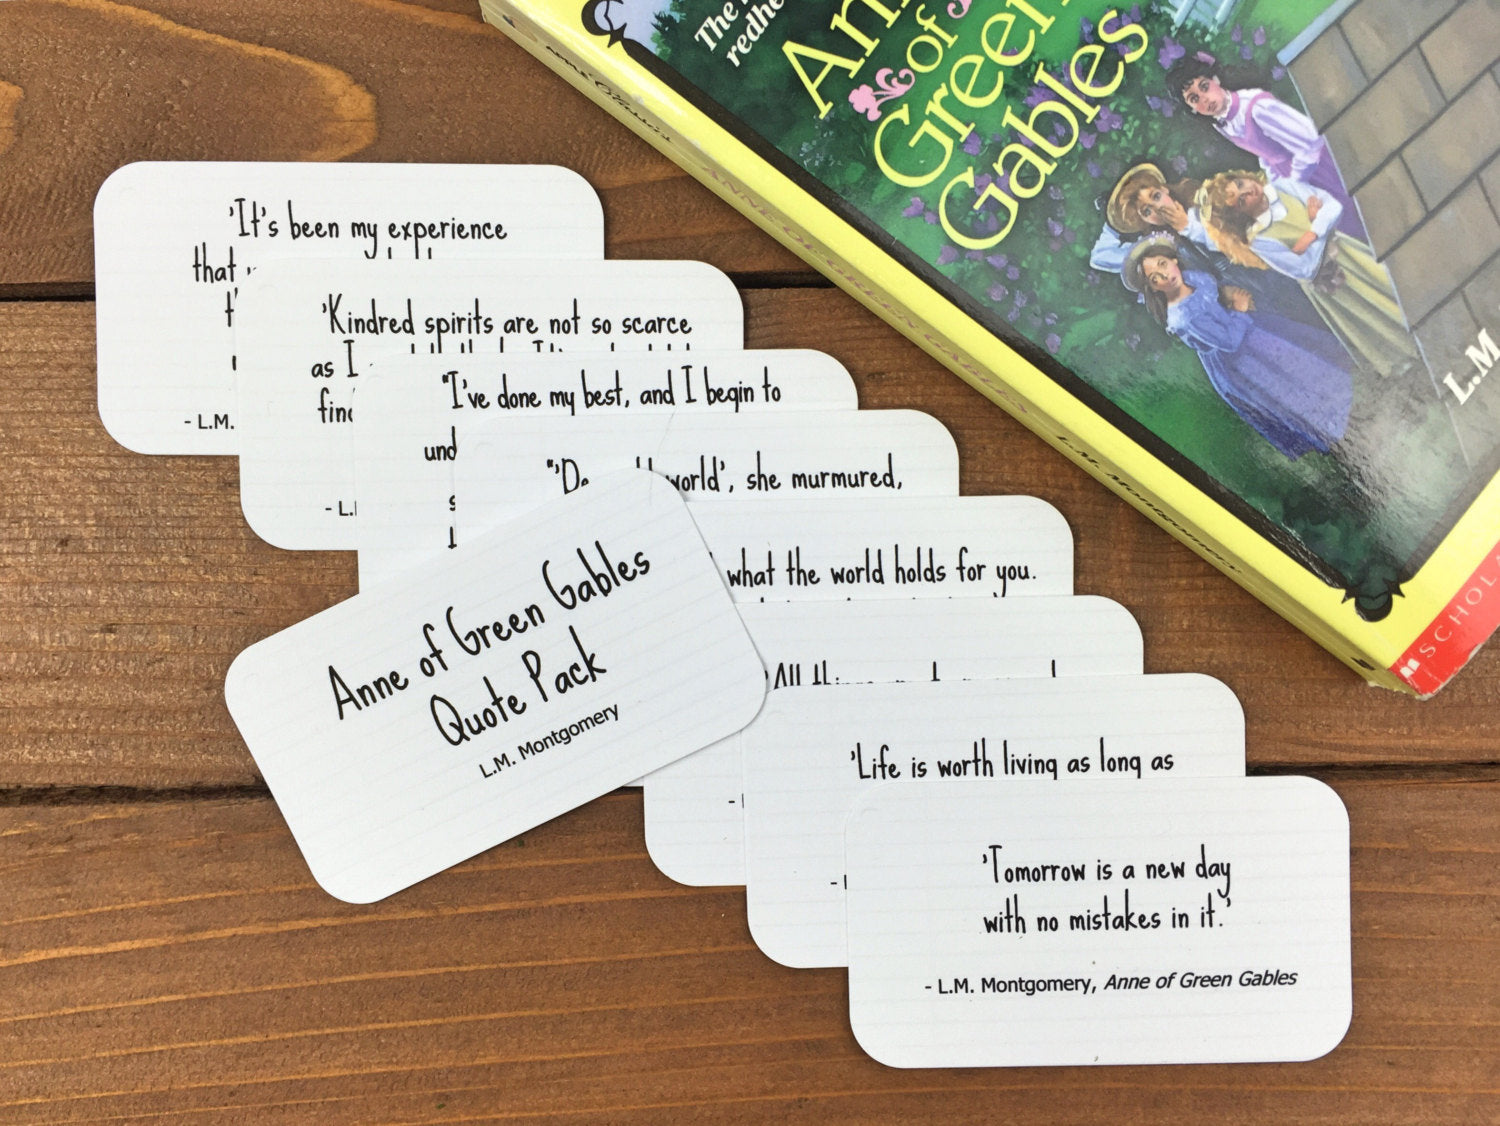 Anne of Green Gables Quote Cards - Anne of Green Gables Party Favor, Quotes for Kids, Anne of Green Gables Quotes -Set of 8 Mini Quote Cards